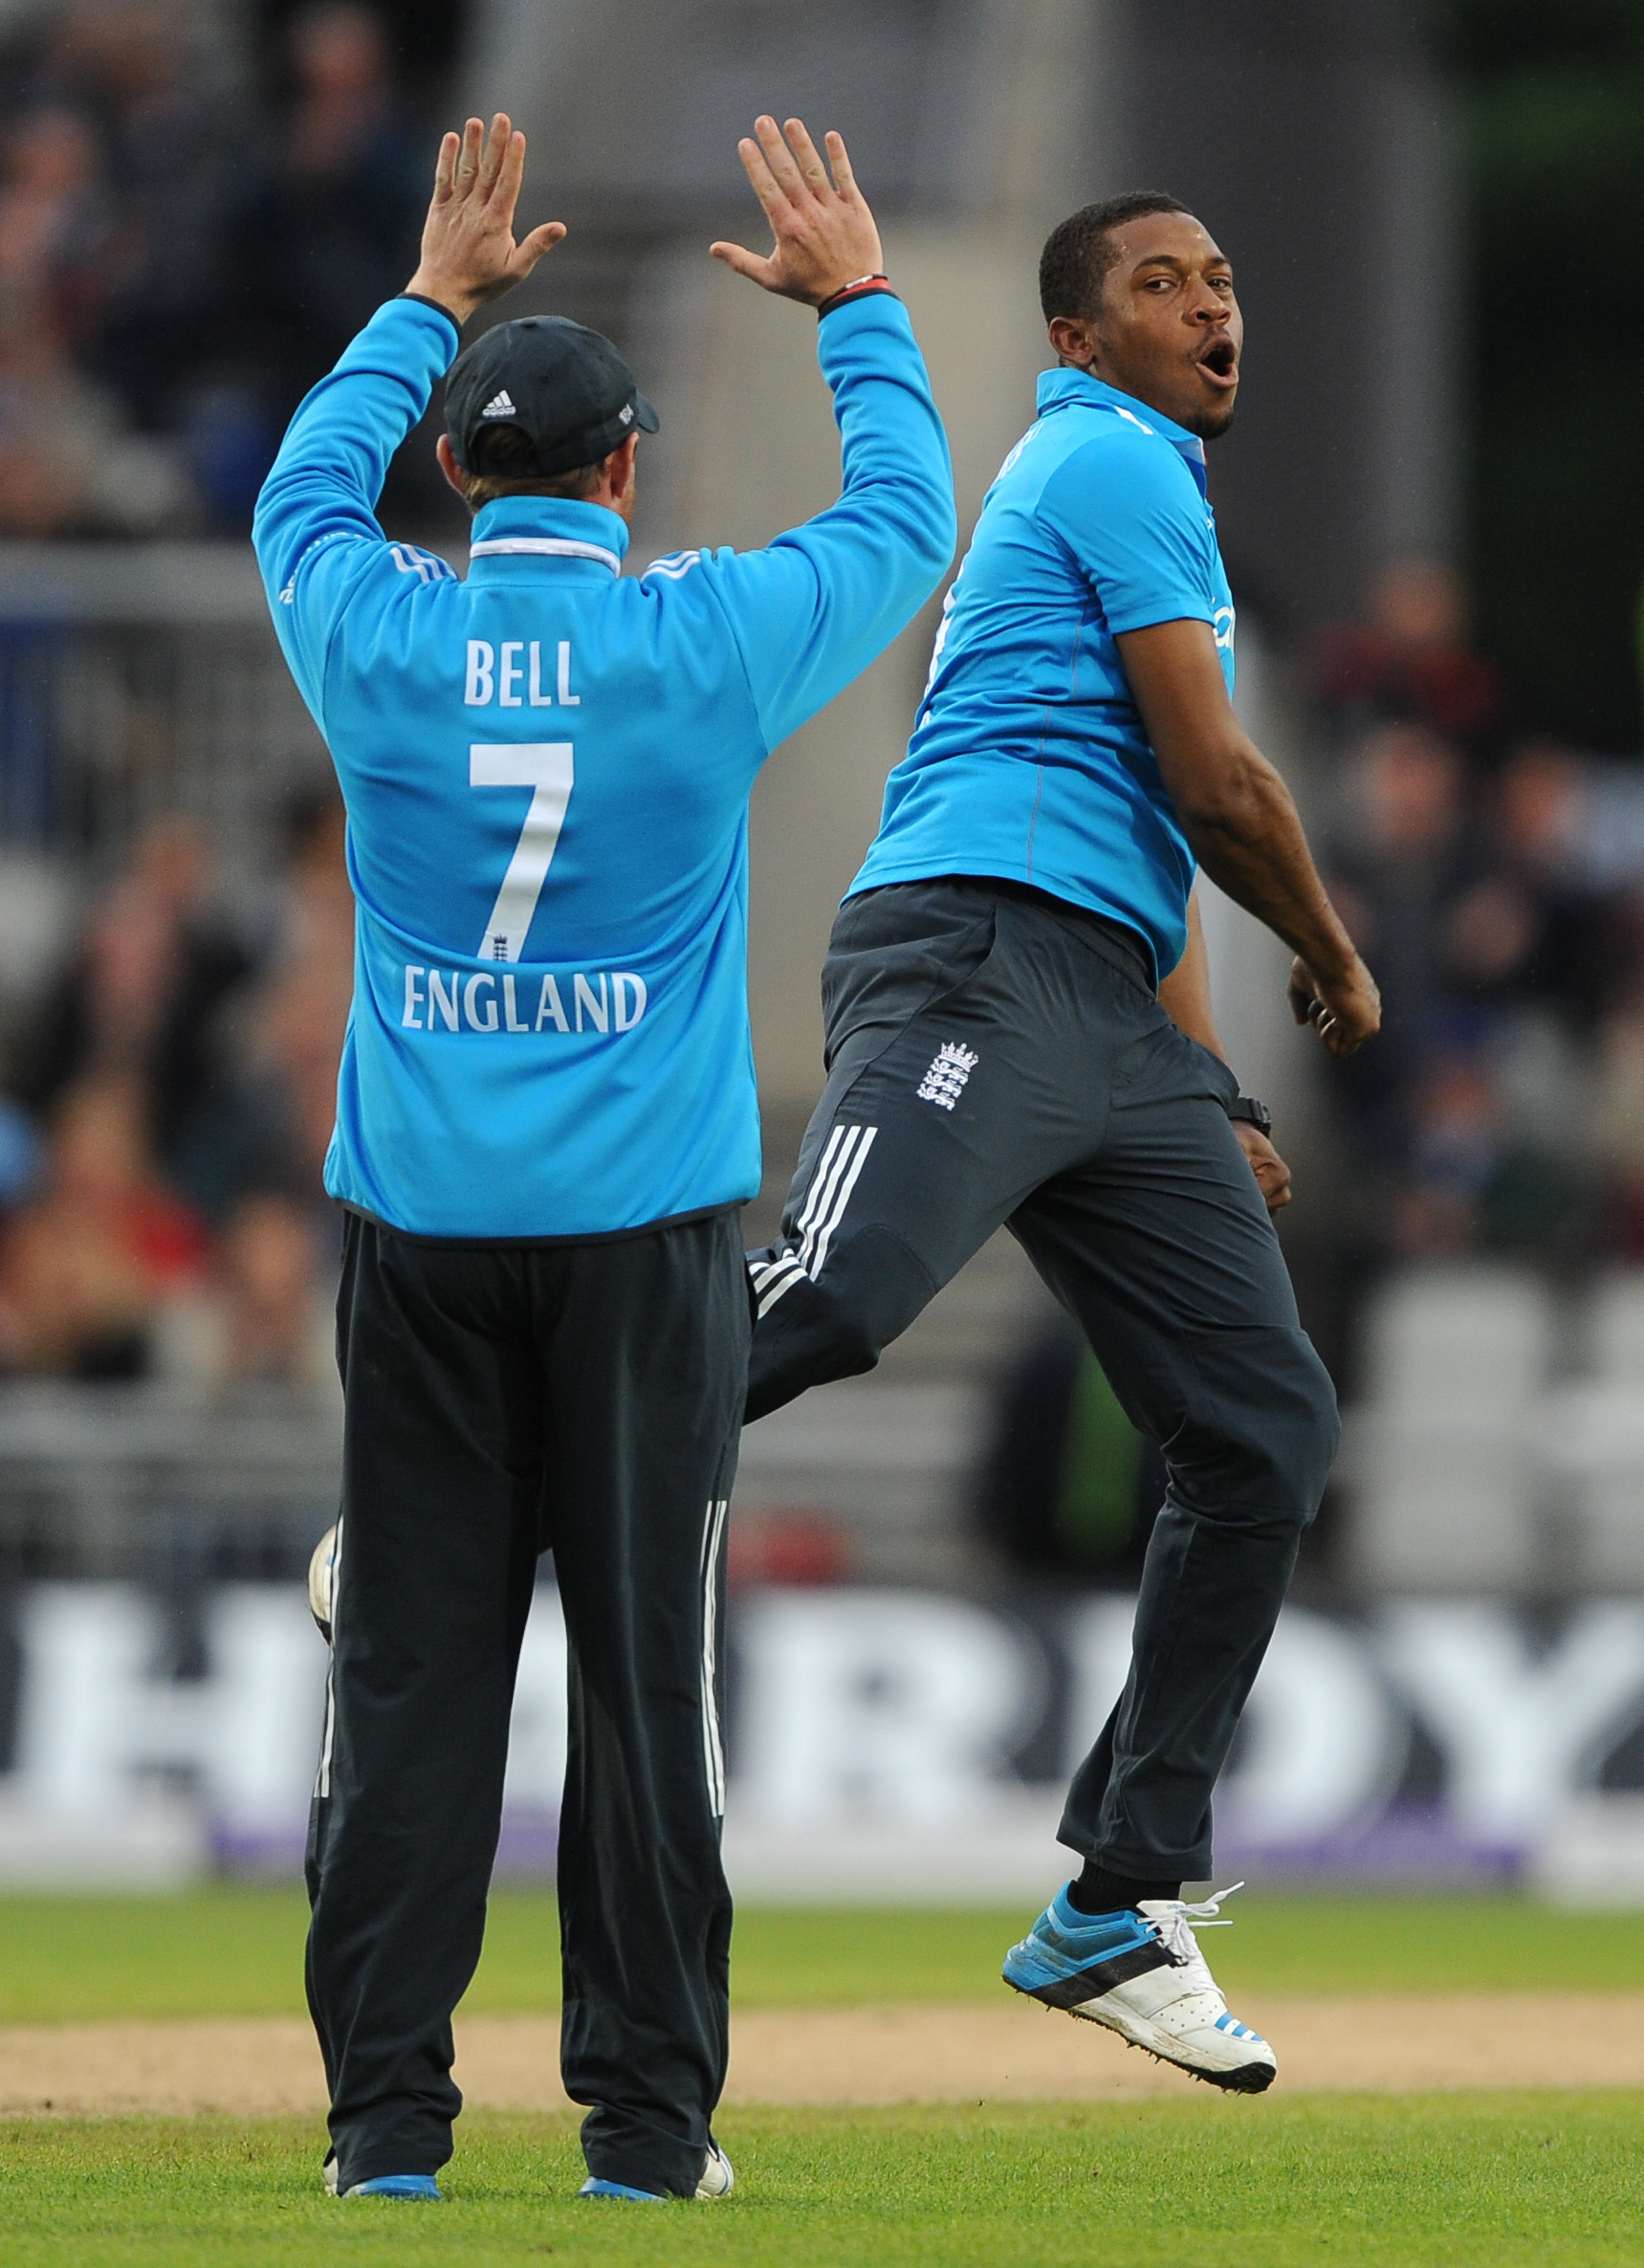 Chris Jordan impressed in the one-day series with Sri Lanka